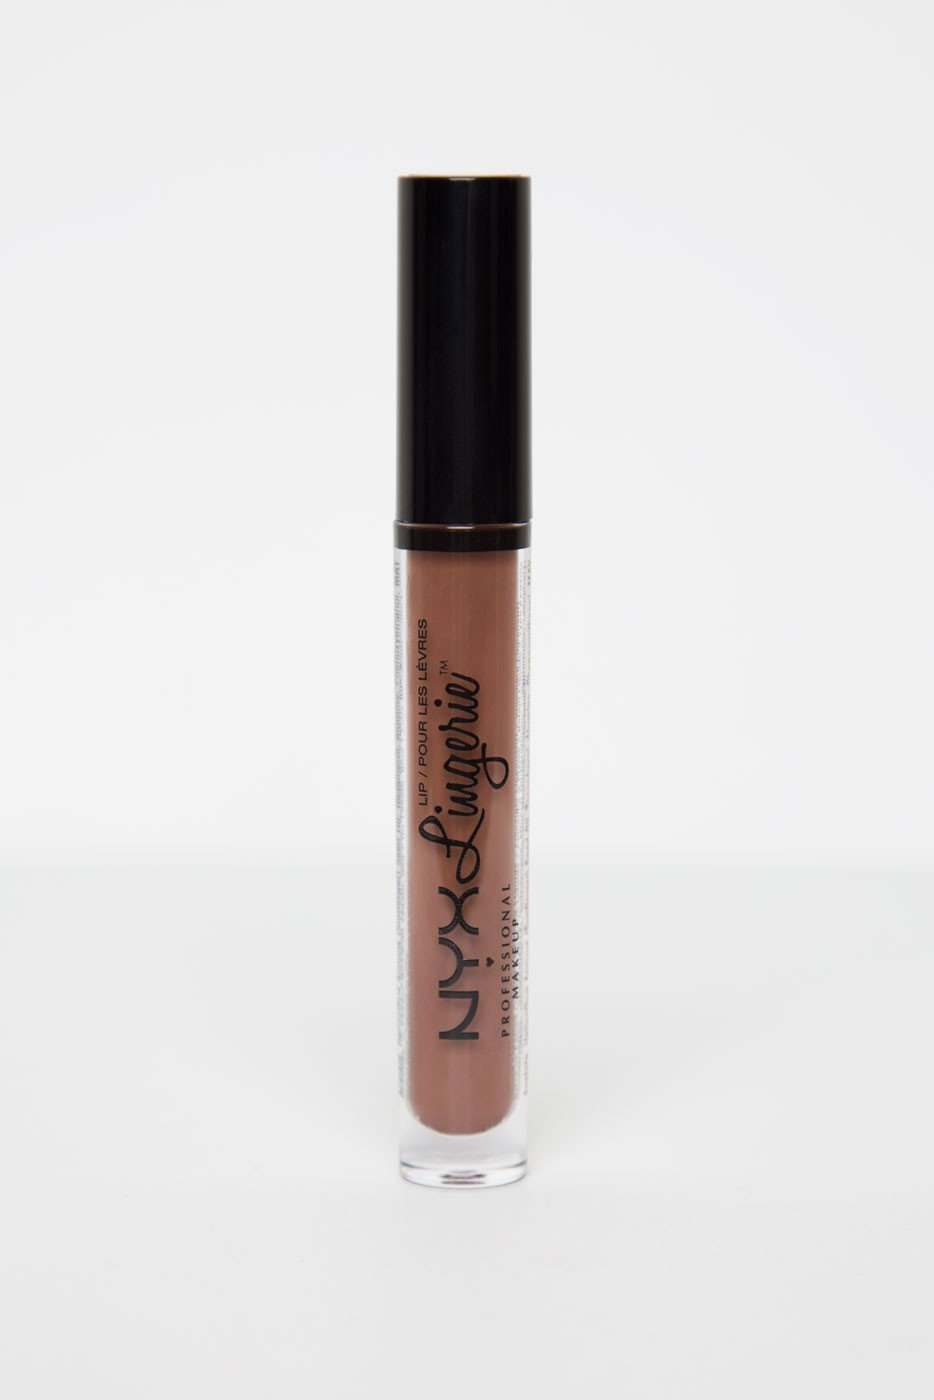 Beauty - NYX Lingerie Liquid Lipstick - Teddy